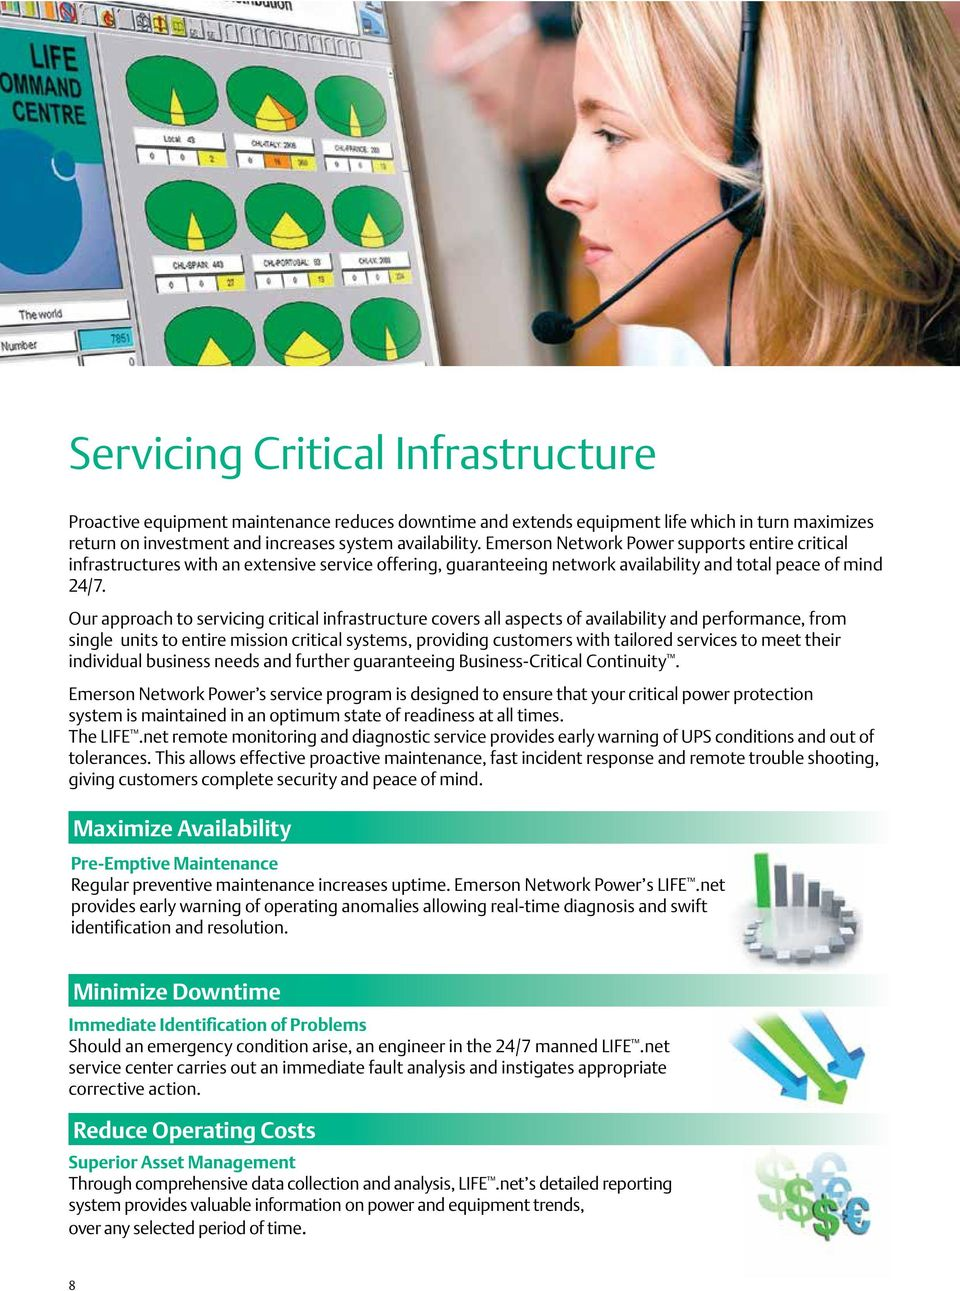 Our approach to servicing critical infrastructure covers all aspects of availability and performance, from single units to entire mission critical systems, providing customers with tailored services